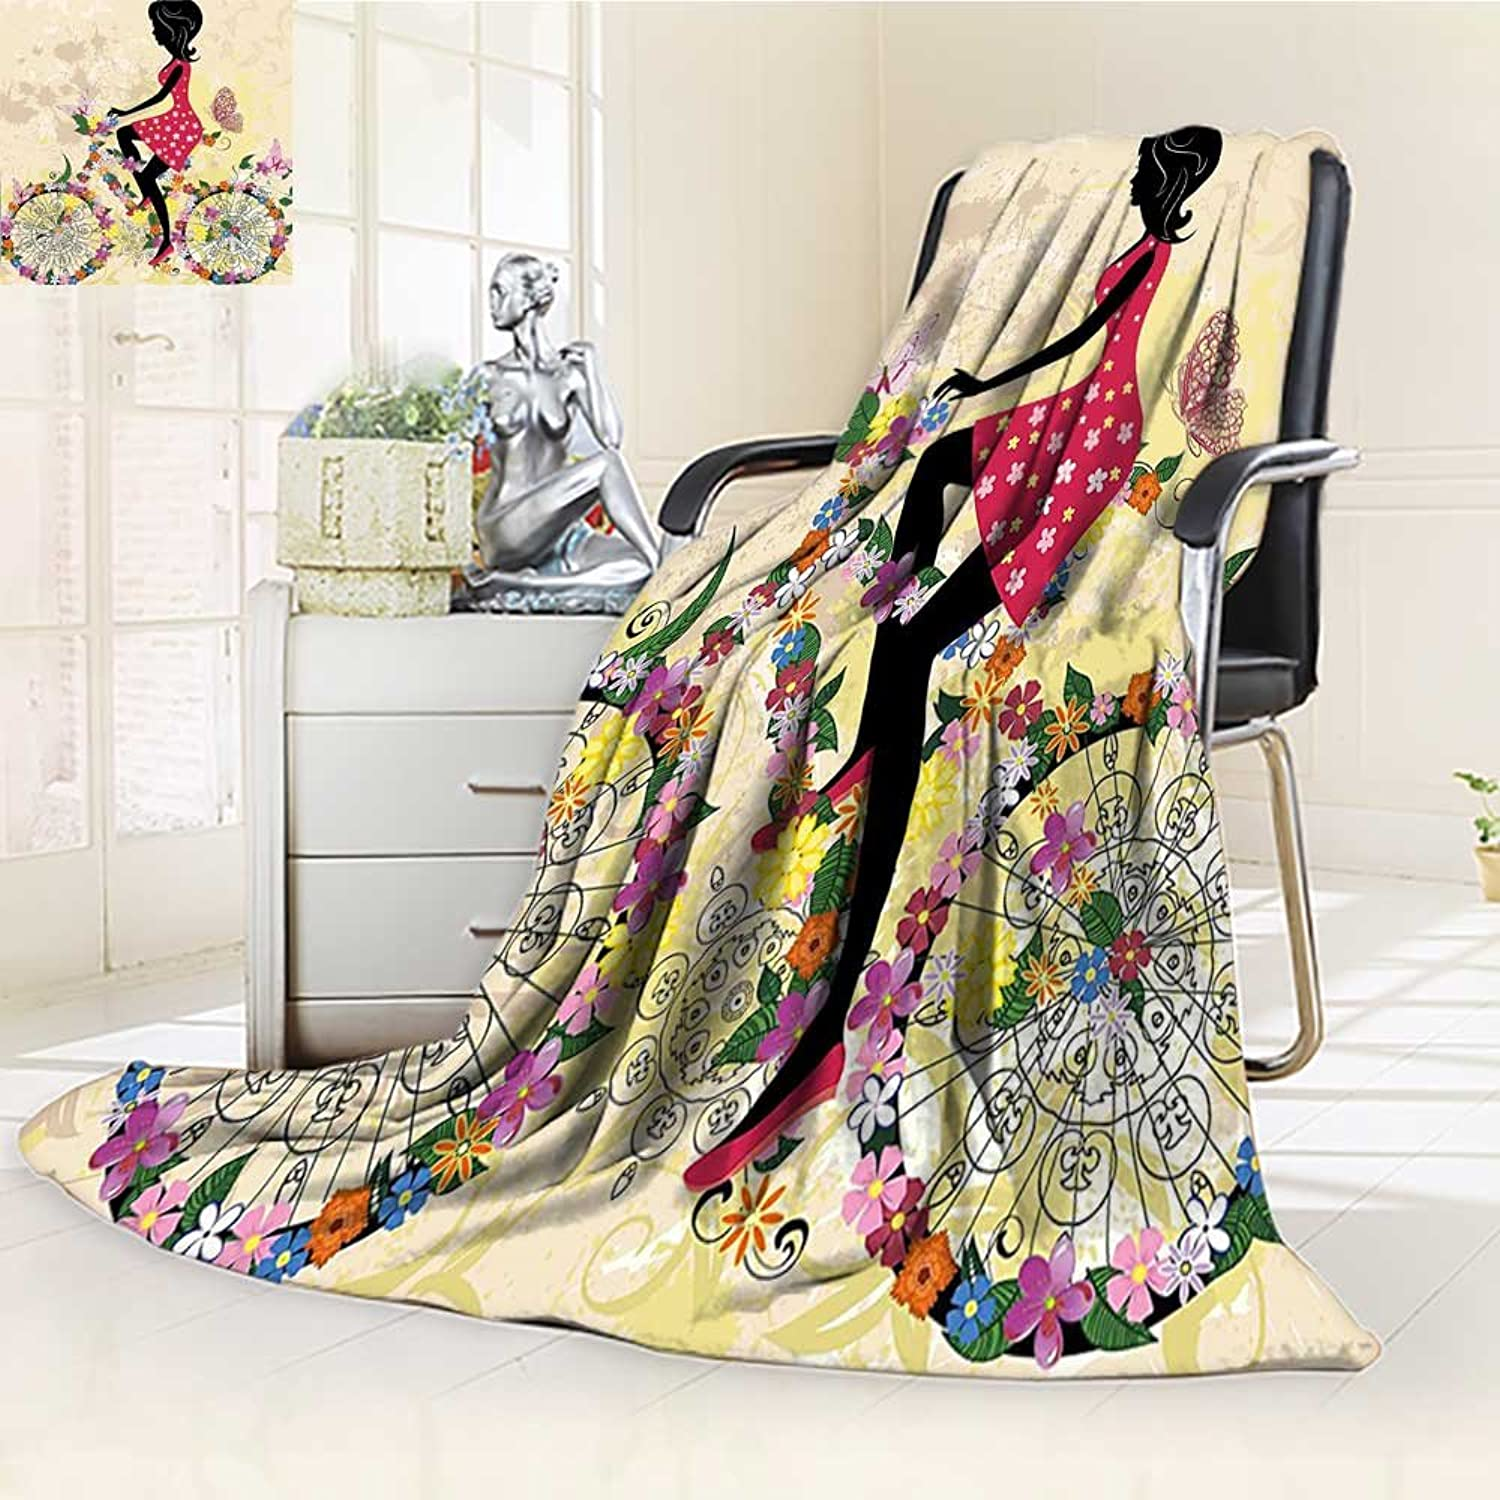 YOYIHOME Plush Throw Duplex Printed Blanket Super Soft and CozyGirls Decor A Girl on The Bicycle with Flowers and Butterflies Beige and Light Pink Blanket Perfect for Couch Sofa W59 x H47